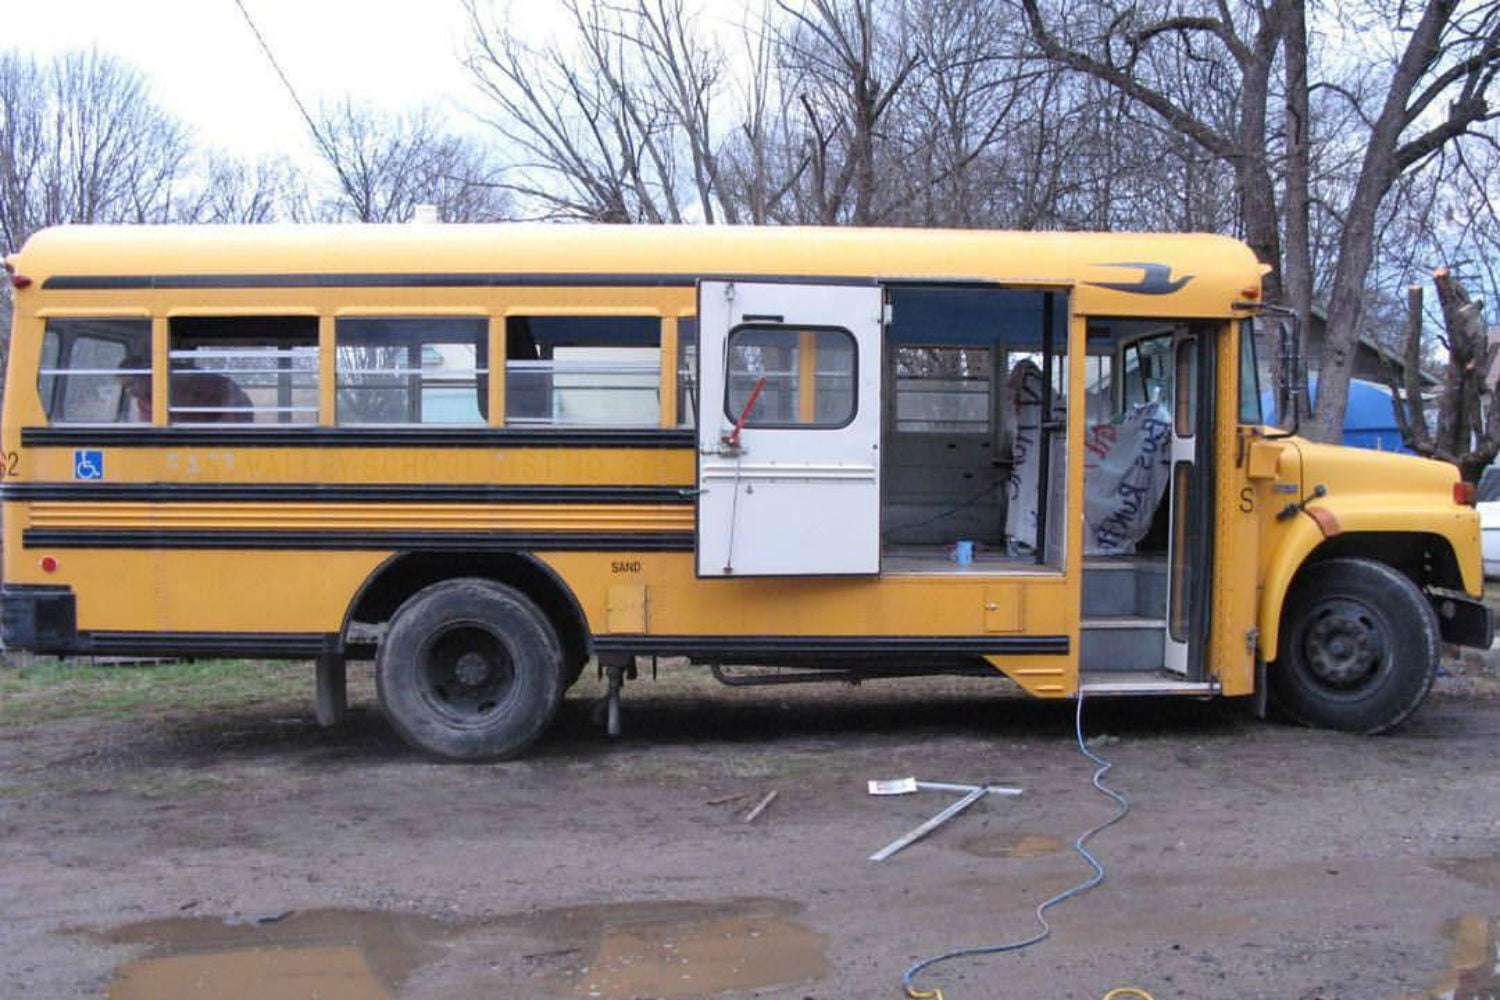 coolest bus to mobile home conversions kylevolkmanbusbefore